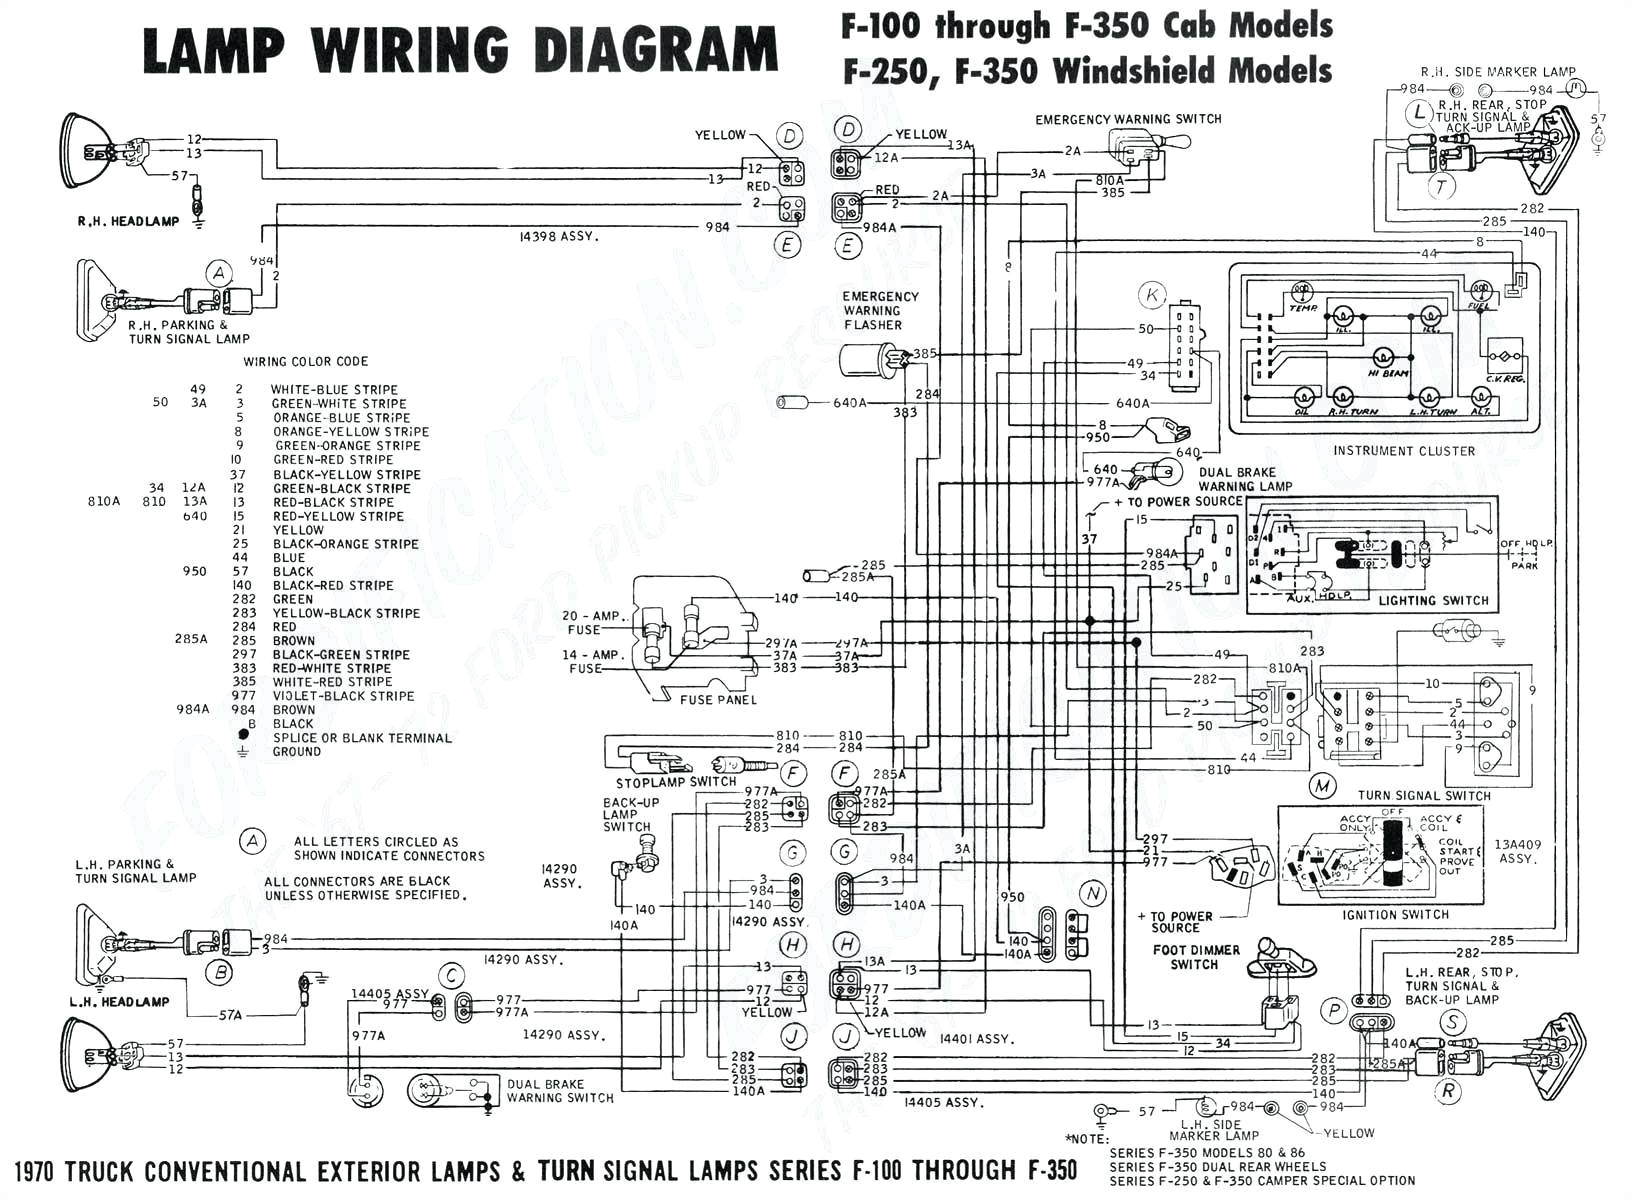 hdtv wiring advanced diagrams wiring diagram info hdtv wiring advanced diagrams wiring diagram mega hdtv wiring